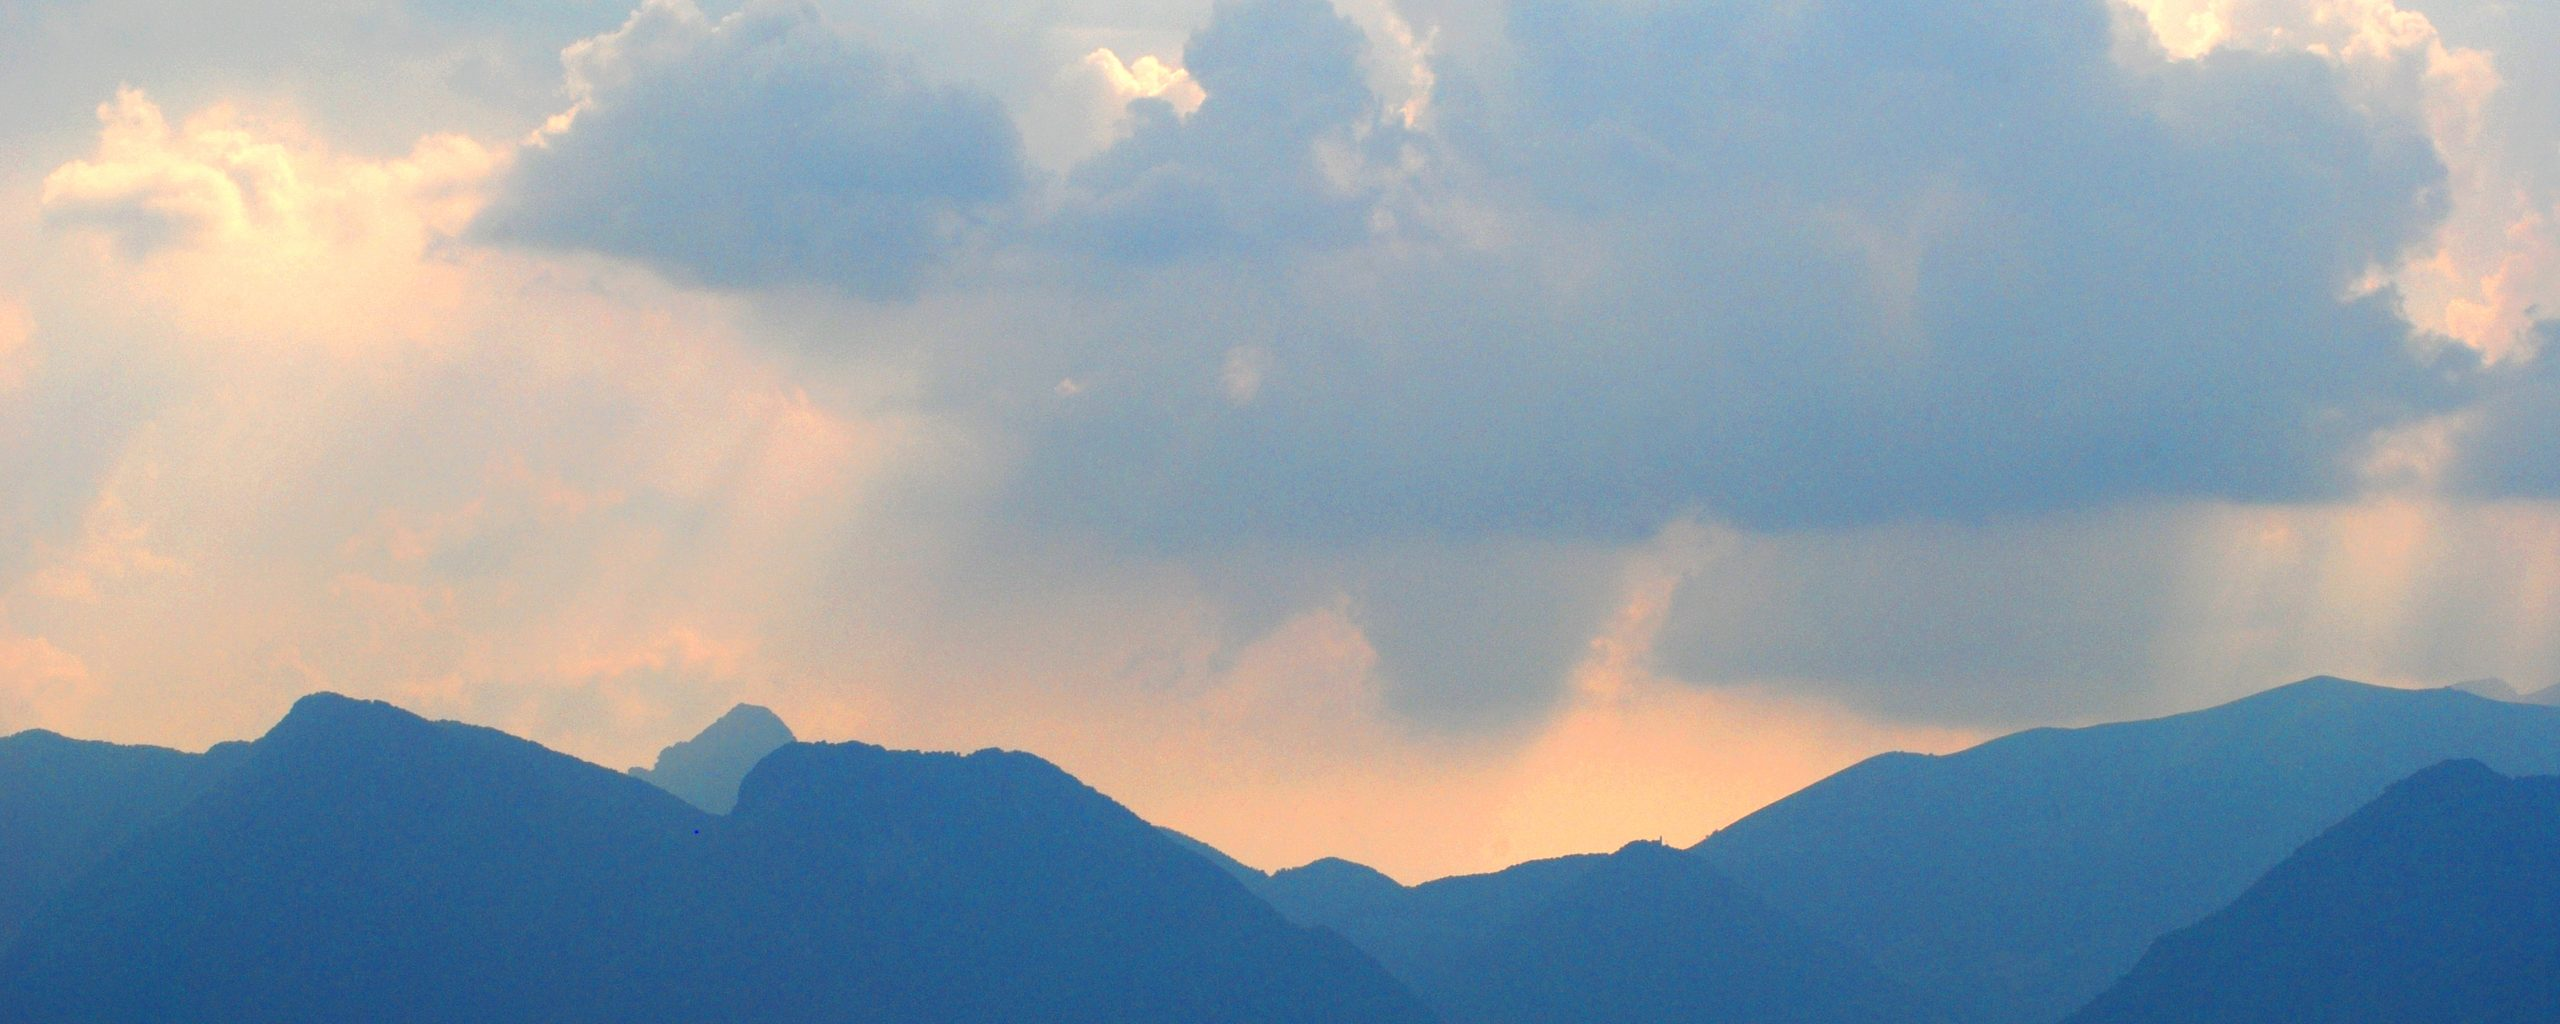 Photo by Jane Mucklow of a stormy sunset over Italian mountains, available as a canvas for your wall.